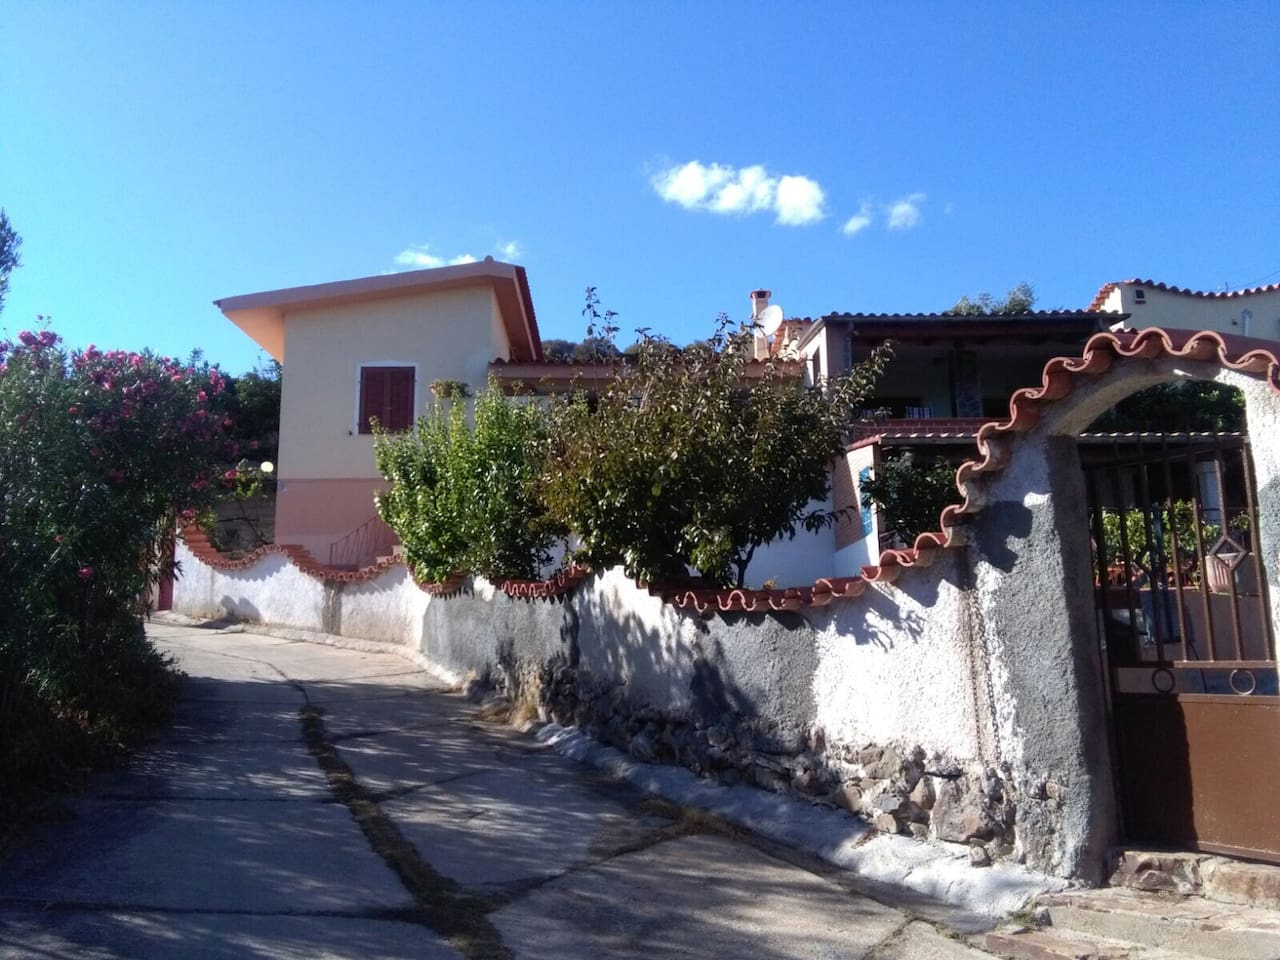 Split house- Our listing is the part on the left which is fully private and enclosed with it's own two private entrances